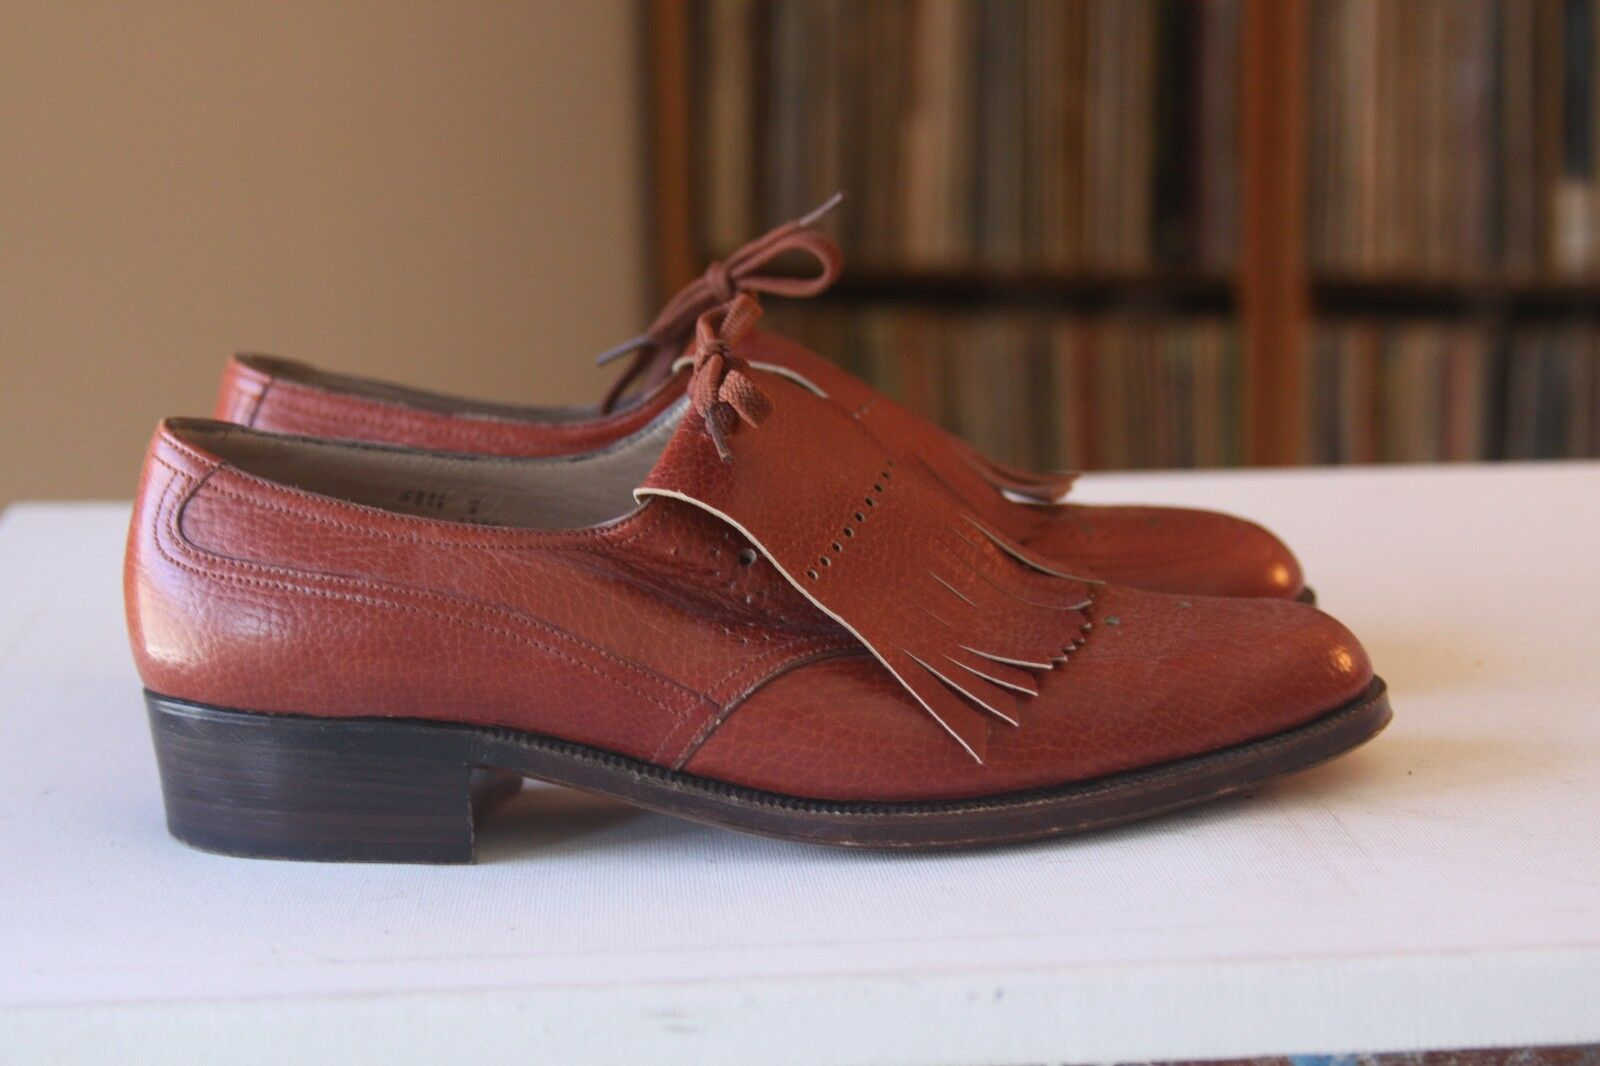 Belgian shoes By Debusschere Brown Leather Lace Lace Lace Up Kiltie Oxfords Size 7 AAAA 4a277d